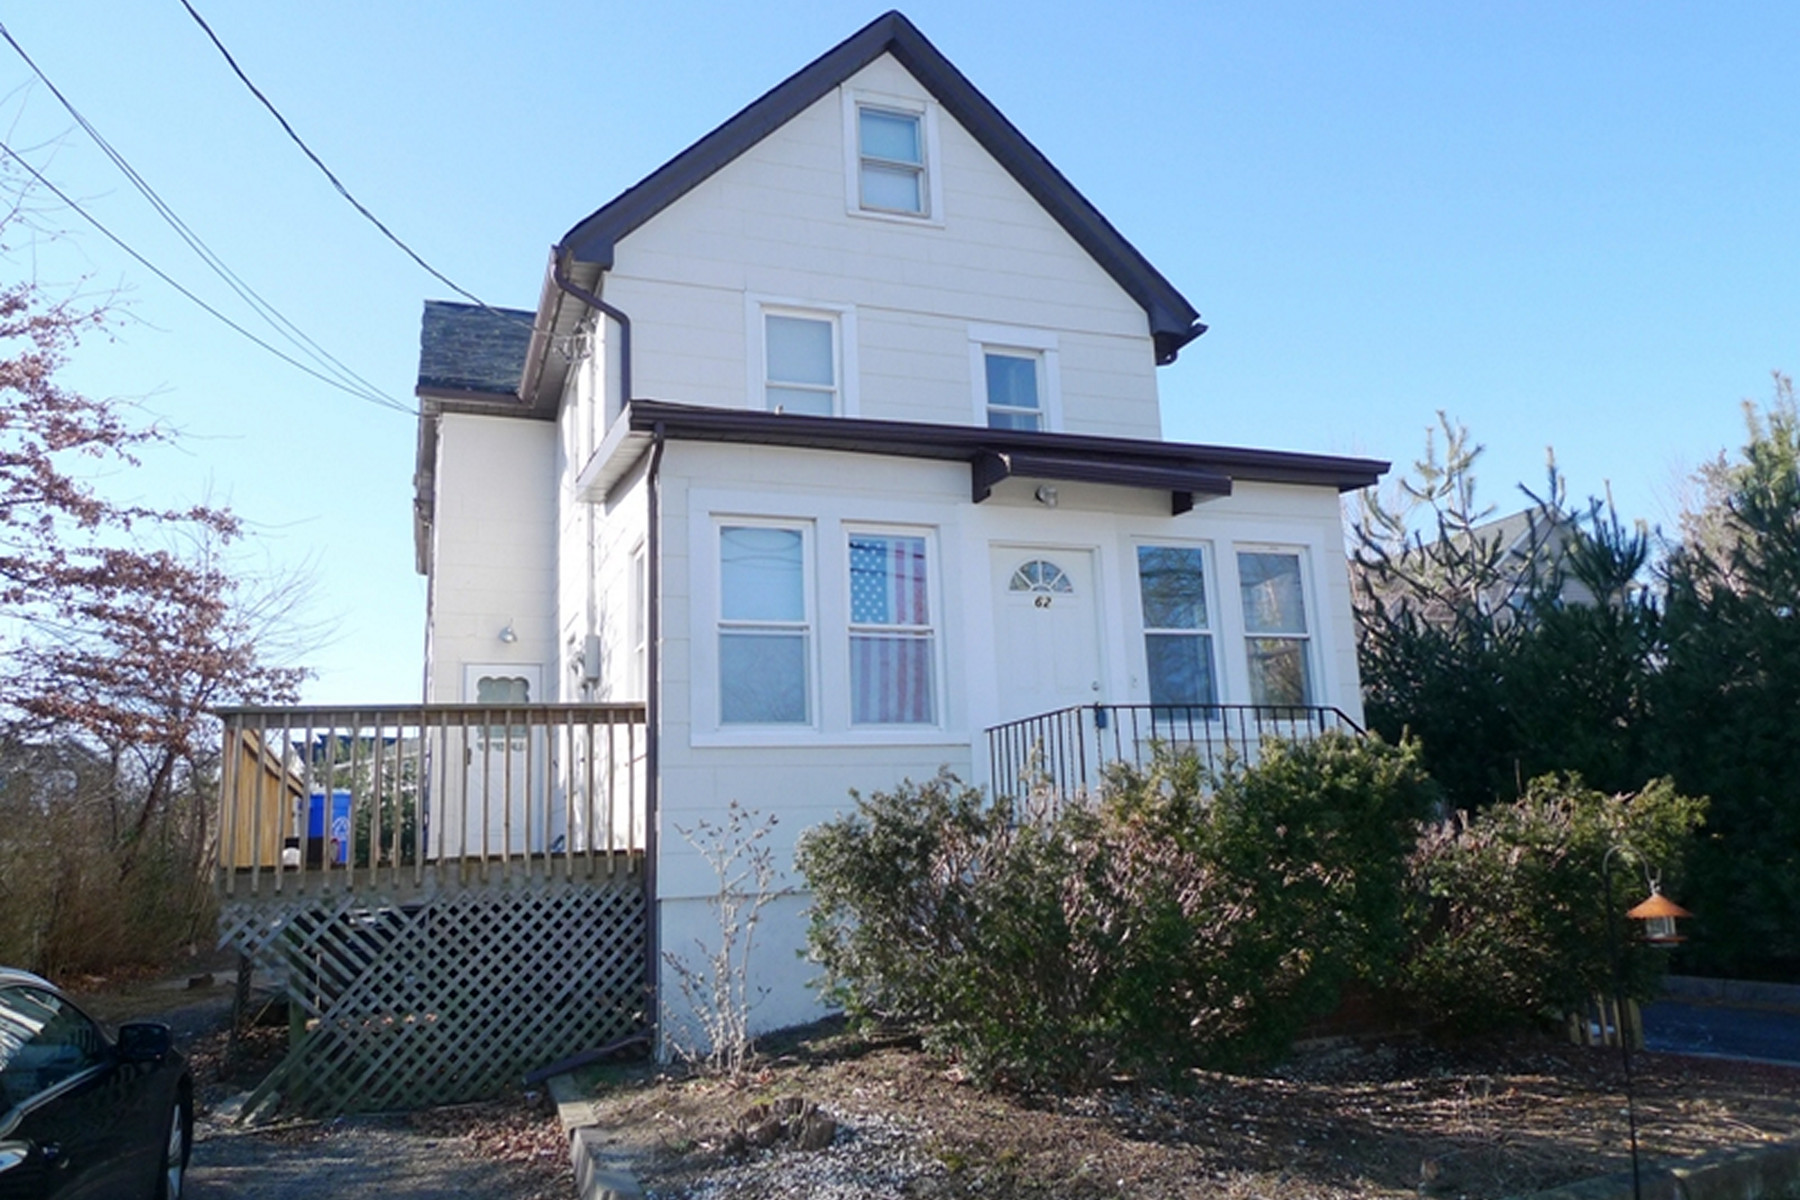 Multi-Family Home for Rent at Updated Apartment 62 W Mahan St 1st Fl, Tenafly, New Jersey 07670 United States